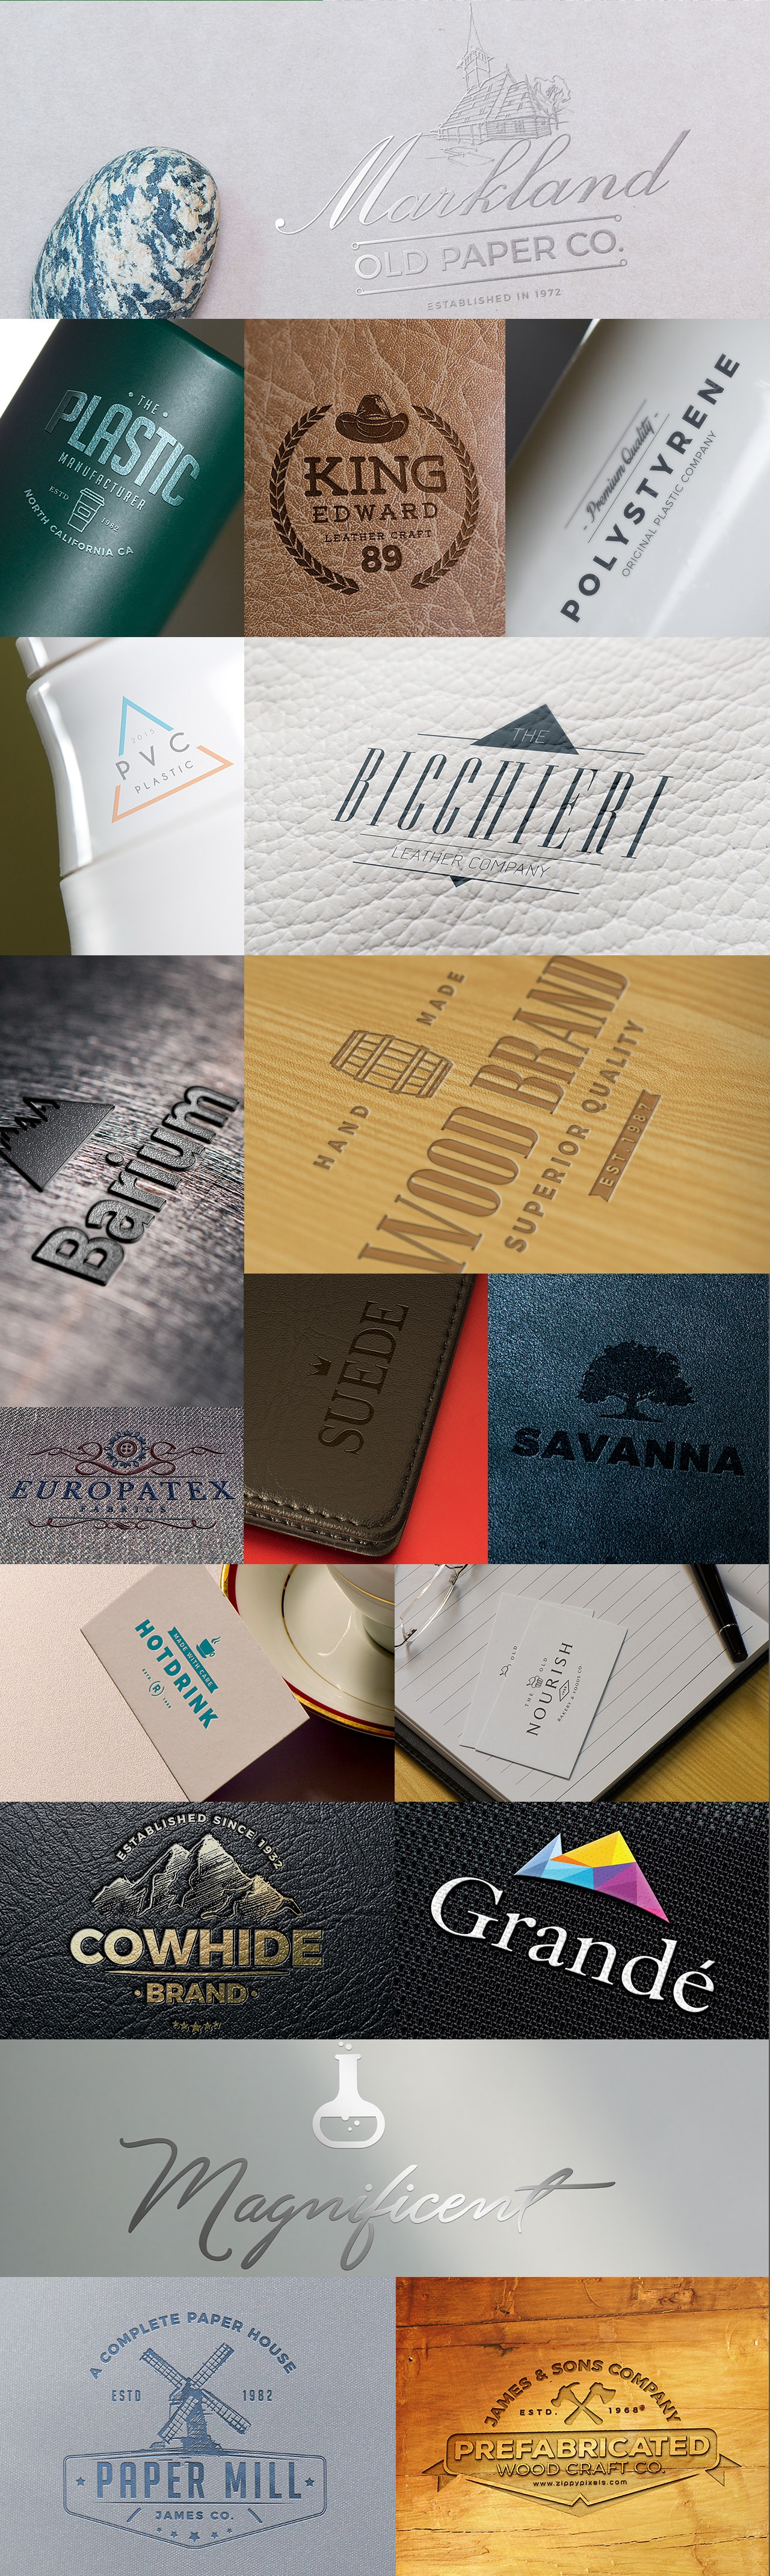 logo-mockups-bundle-emboss-shine-paper-press-carved